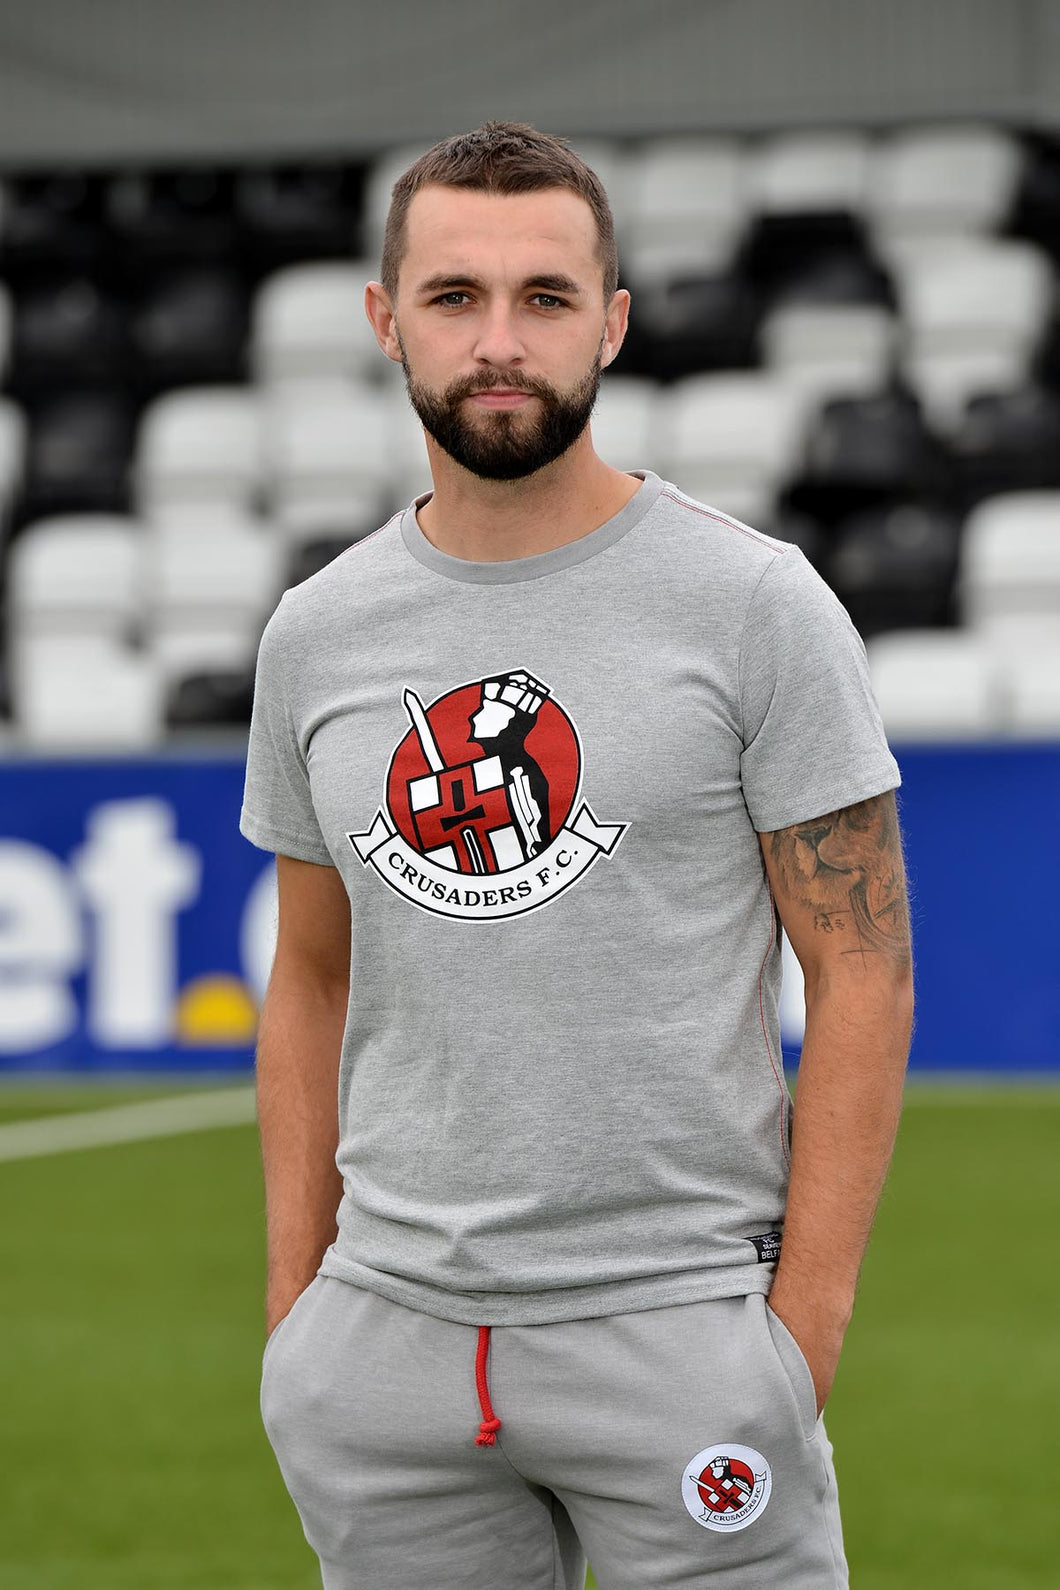 Crusaders Grey Tee - Crusaders FC